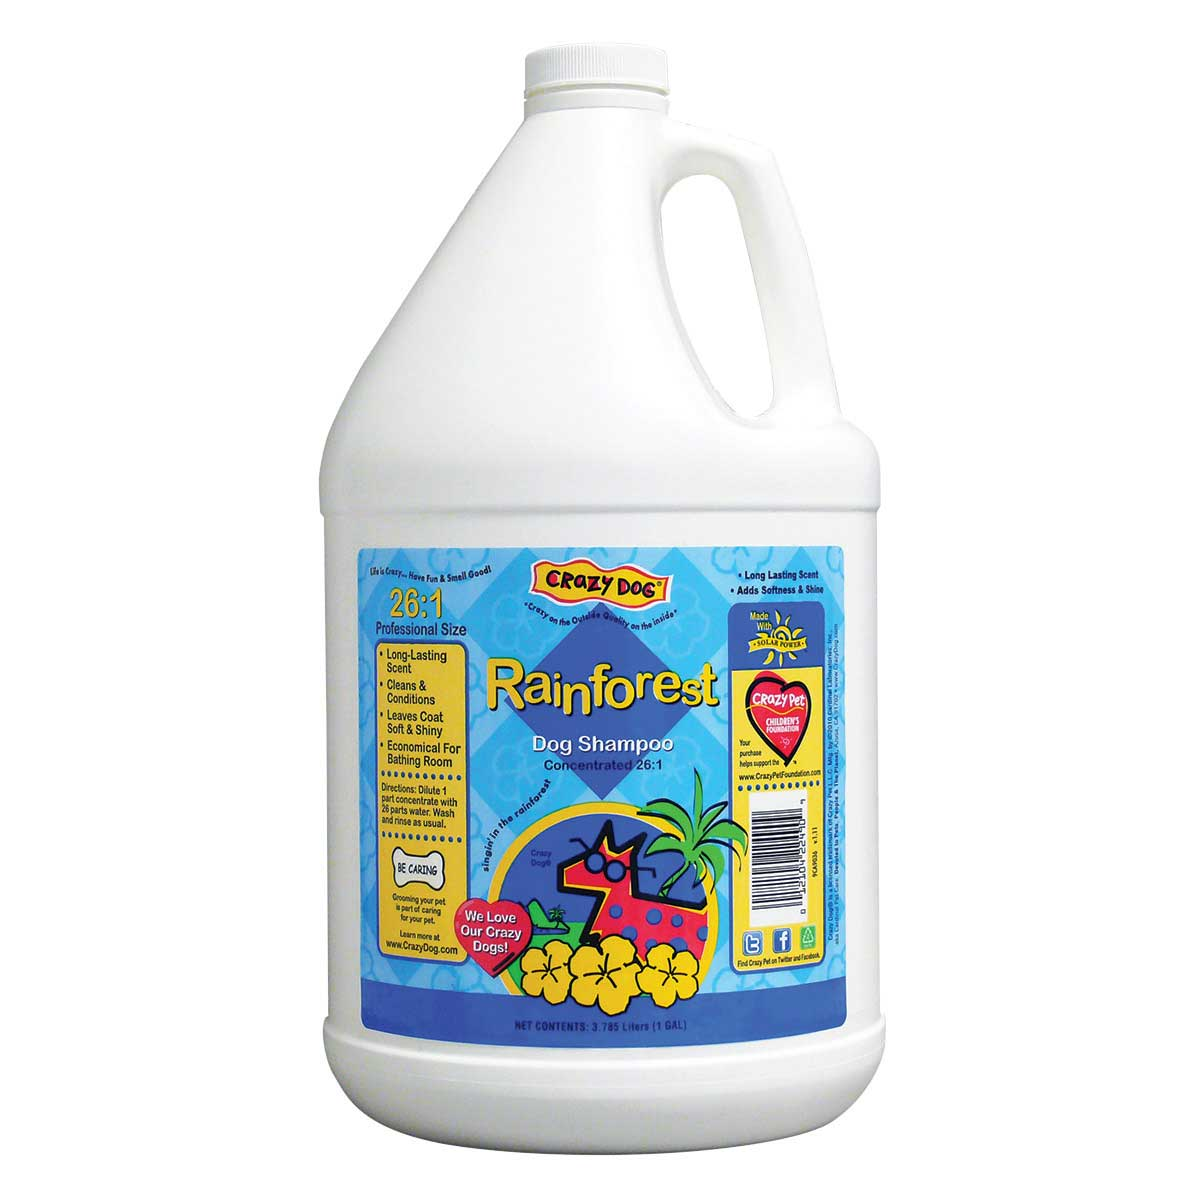 Crazy Dog Rain Forest Shampoo Gallon - 26 to 1